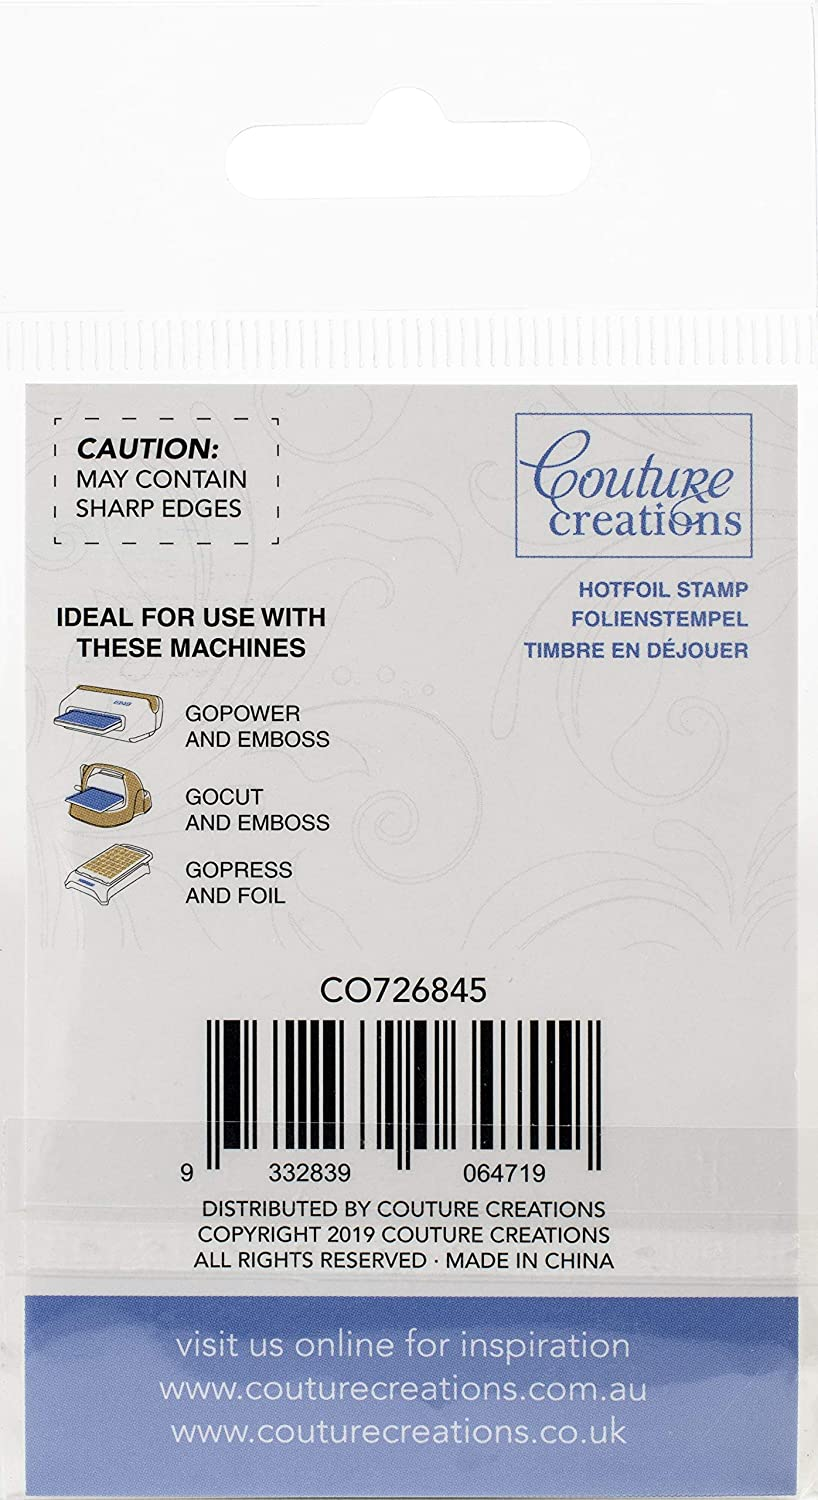 CURLING SQUARE CORNER/' GoPress /& Foil Couture Creations /'HOTFOIL STAMP